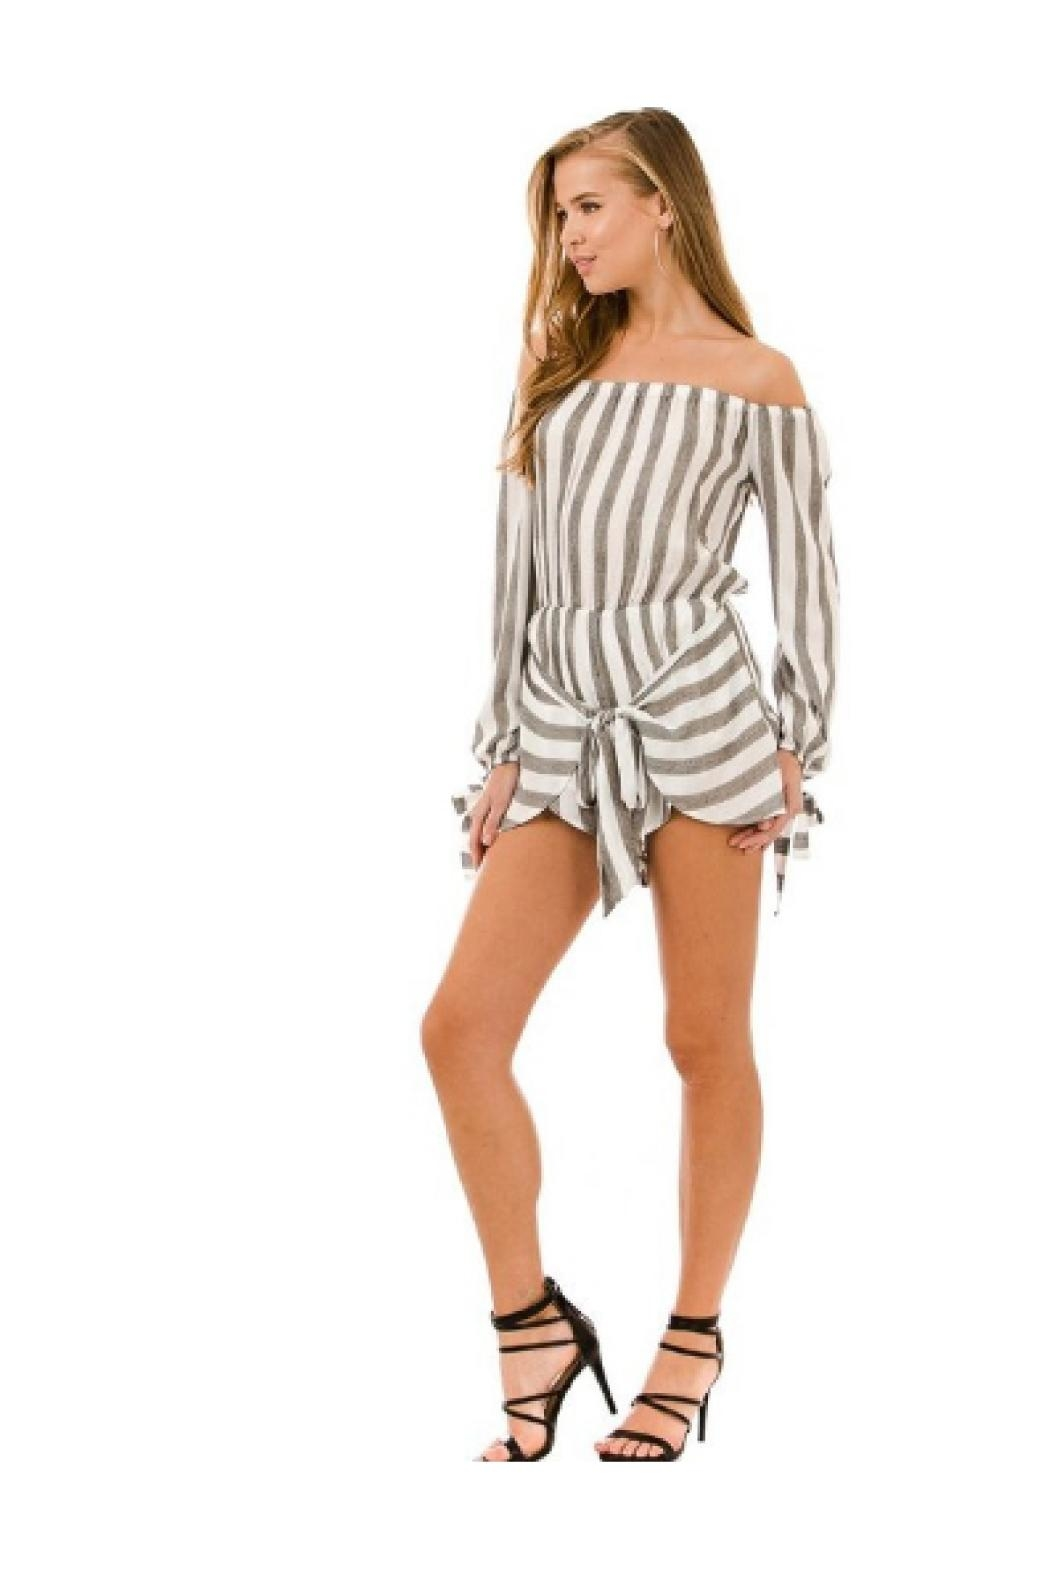 AKAIV Tie Front Romper - Main Image